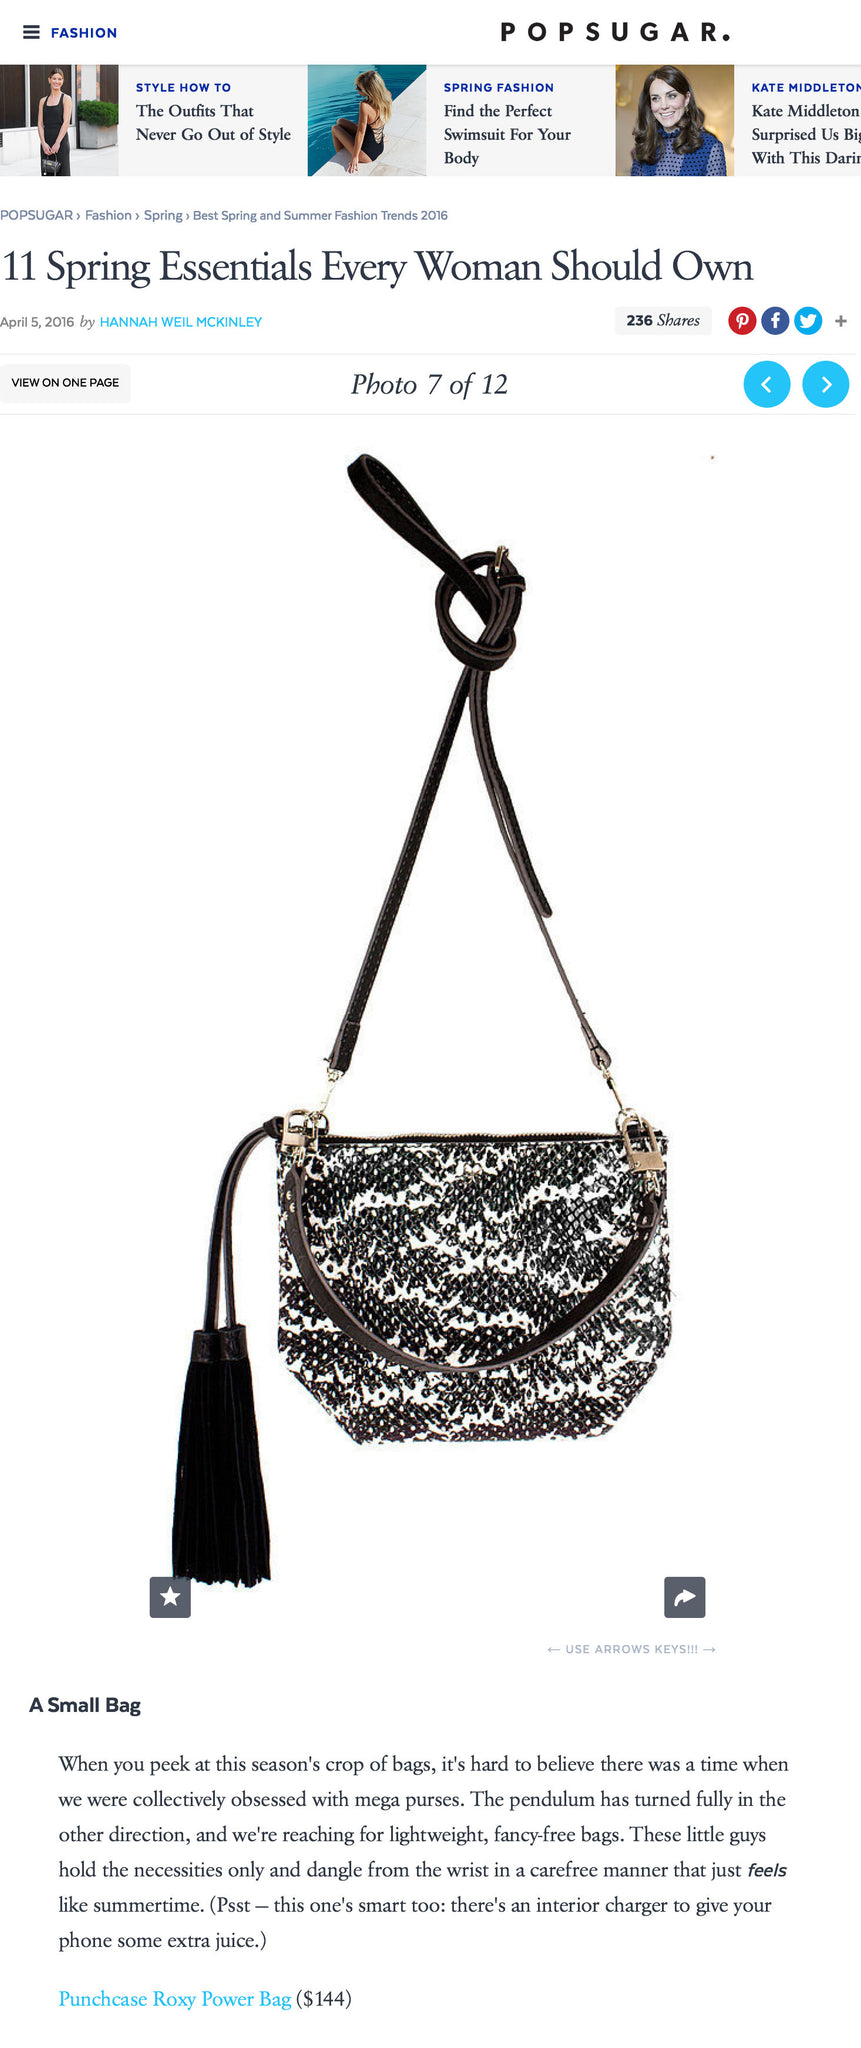 Roxy Power Bag Snake skin